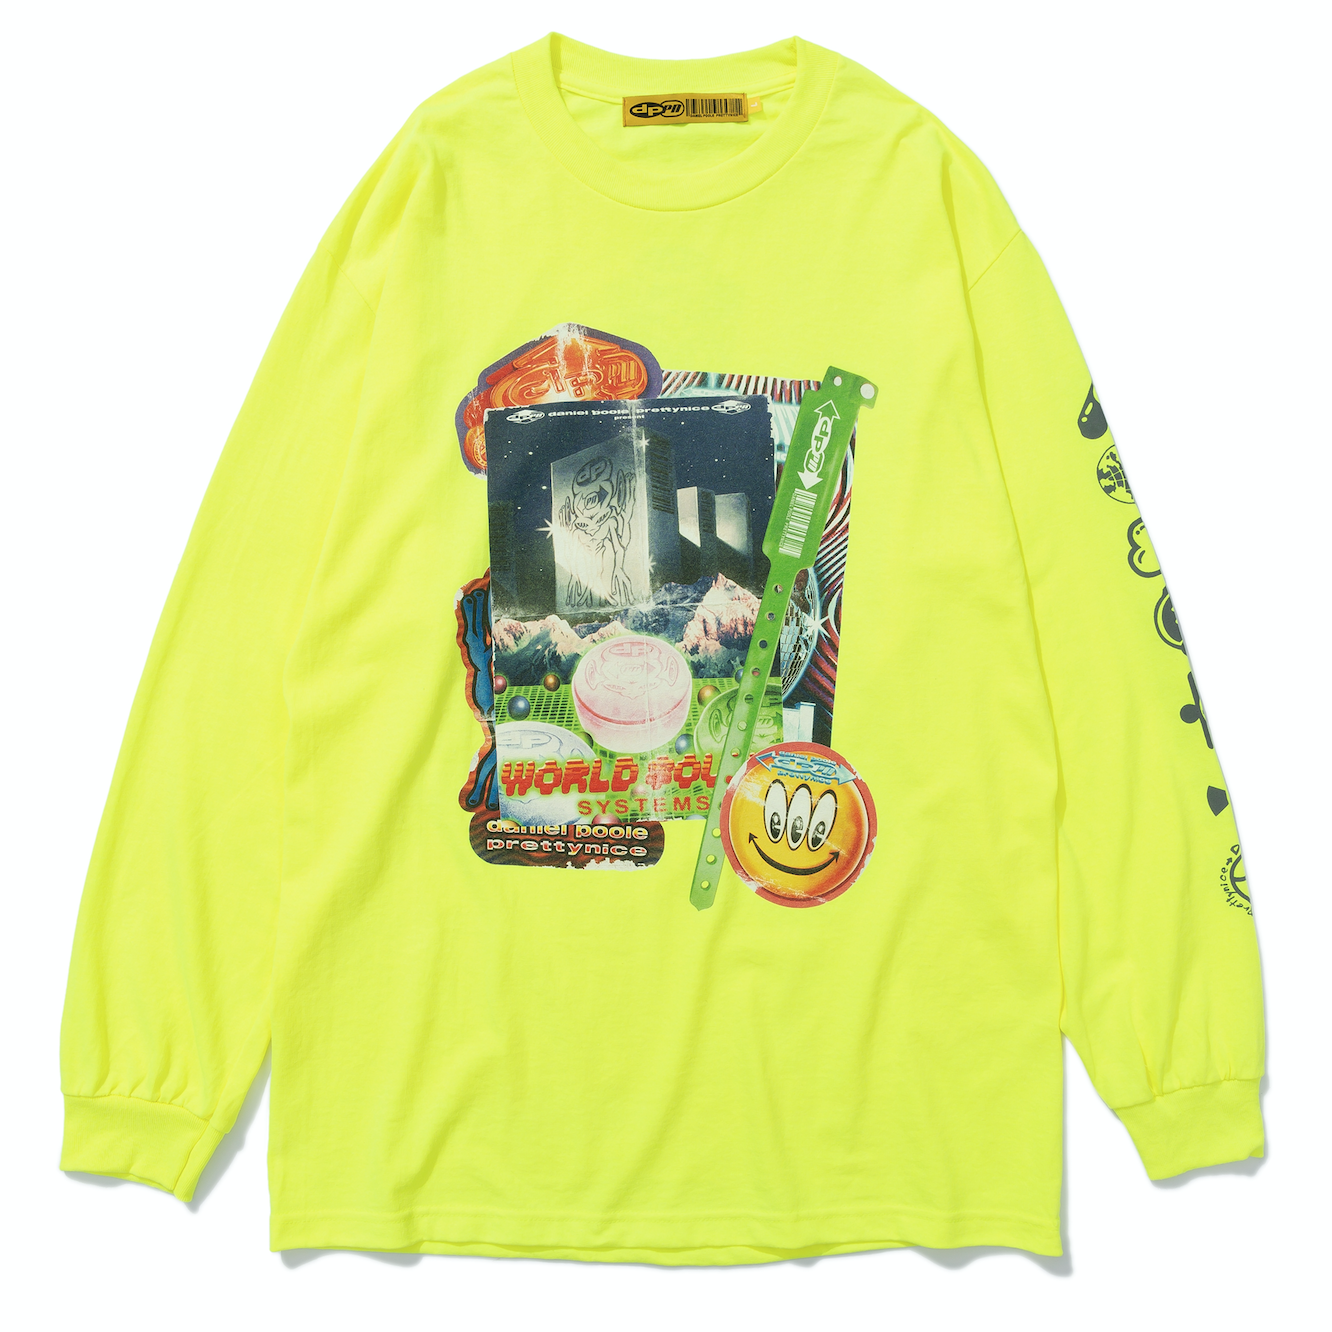 World Sound Systems Long-Sleeve Safety Yellow